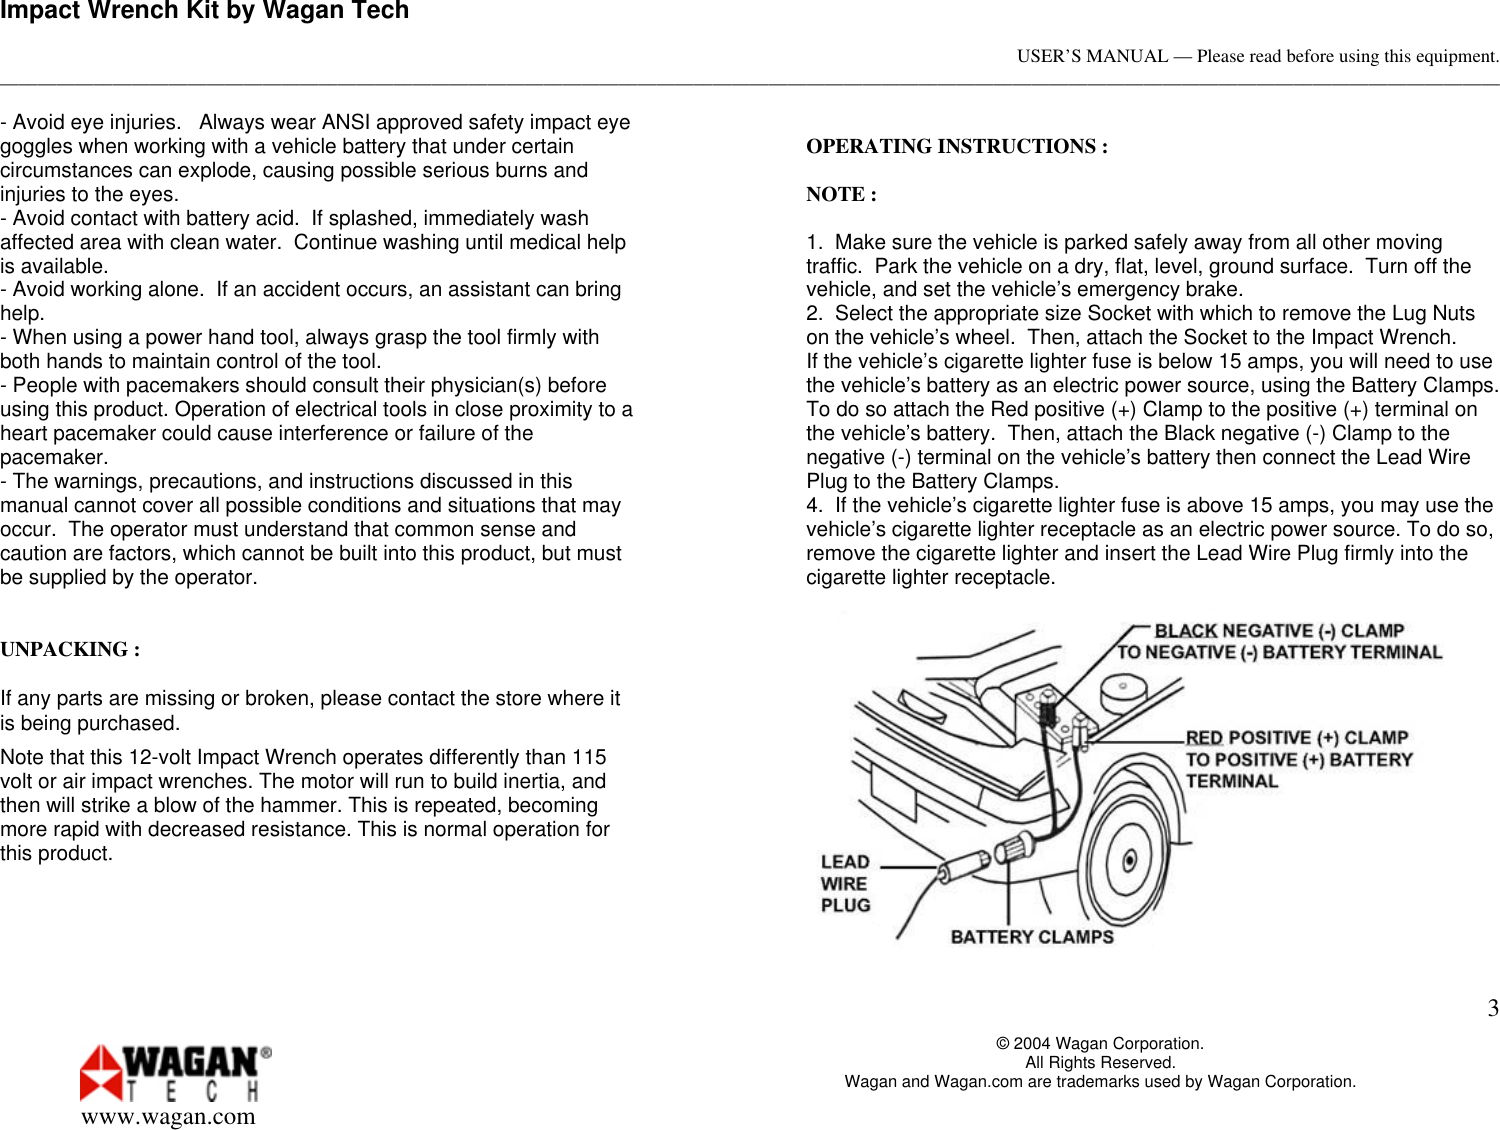 Page 3 of 4 - Wagan Wagan-2257-Users-Manual- Your 350 Watt Power Inverter Converts 12-volt Vehicle Battery Into 115 Volts Of AC  Wagan-2257-users-manual